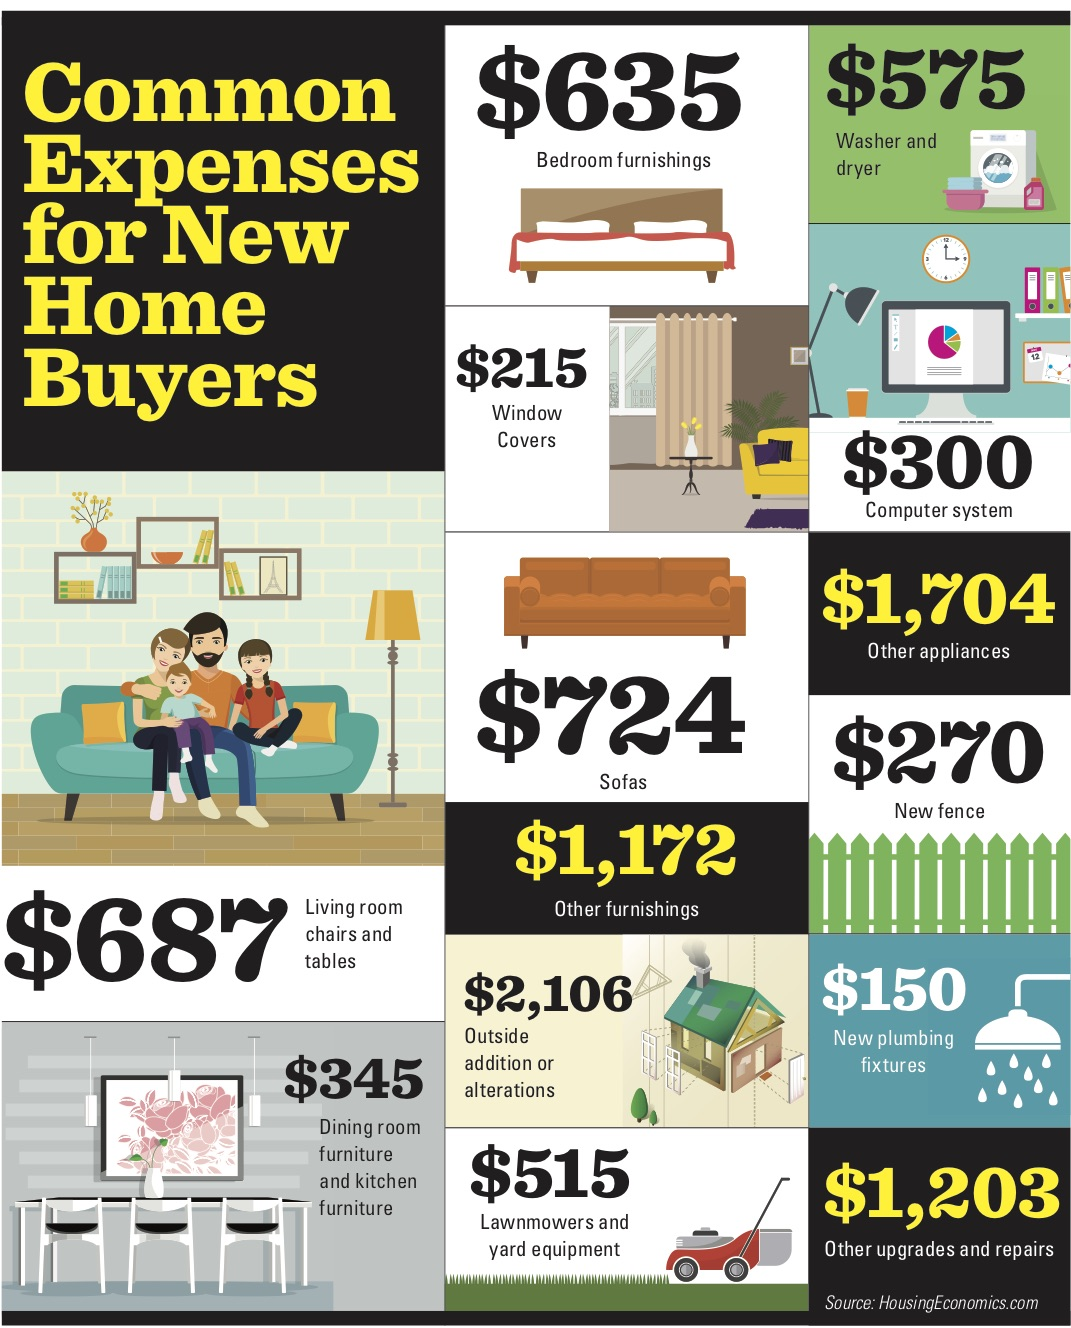 Common New Home Buyer Expenses Infographic